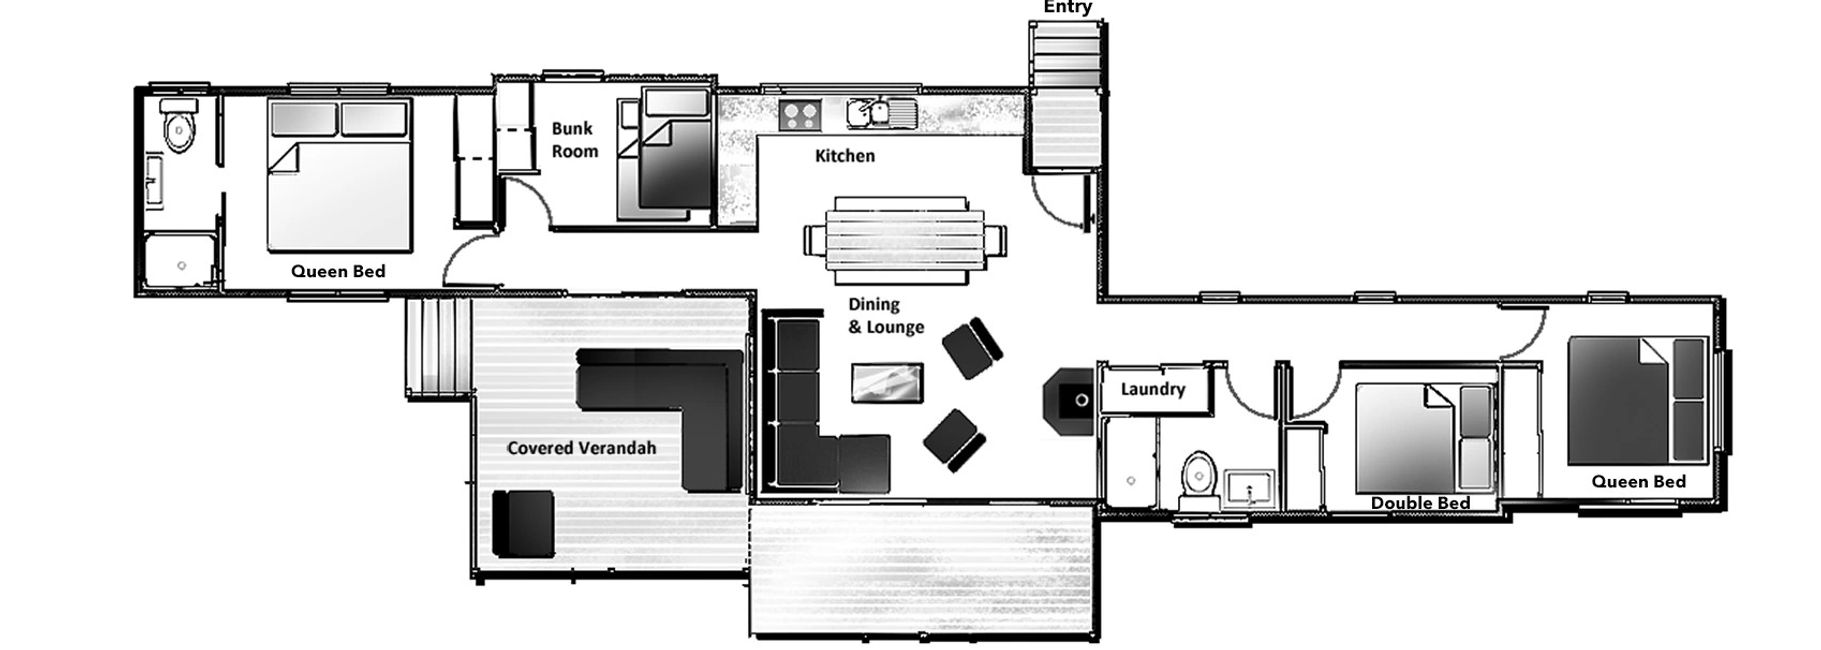 Floorplan of Tea Tree Hollow Southern Highlands Holiday Rental escape